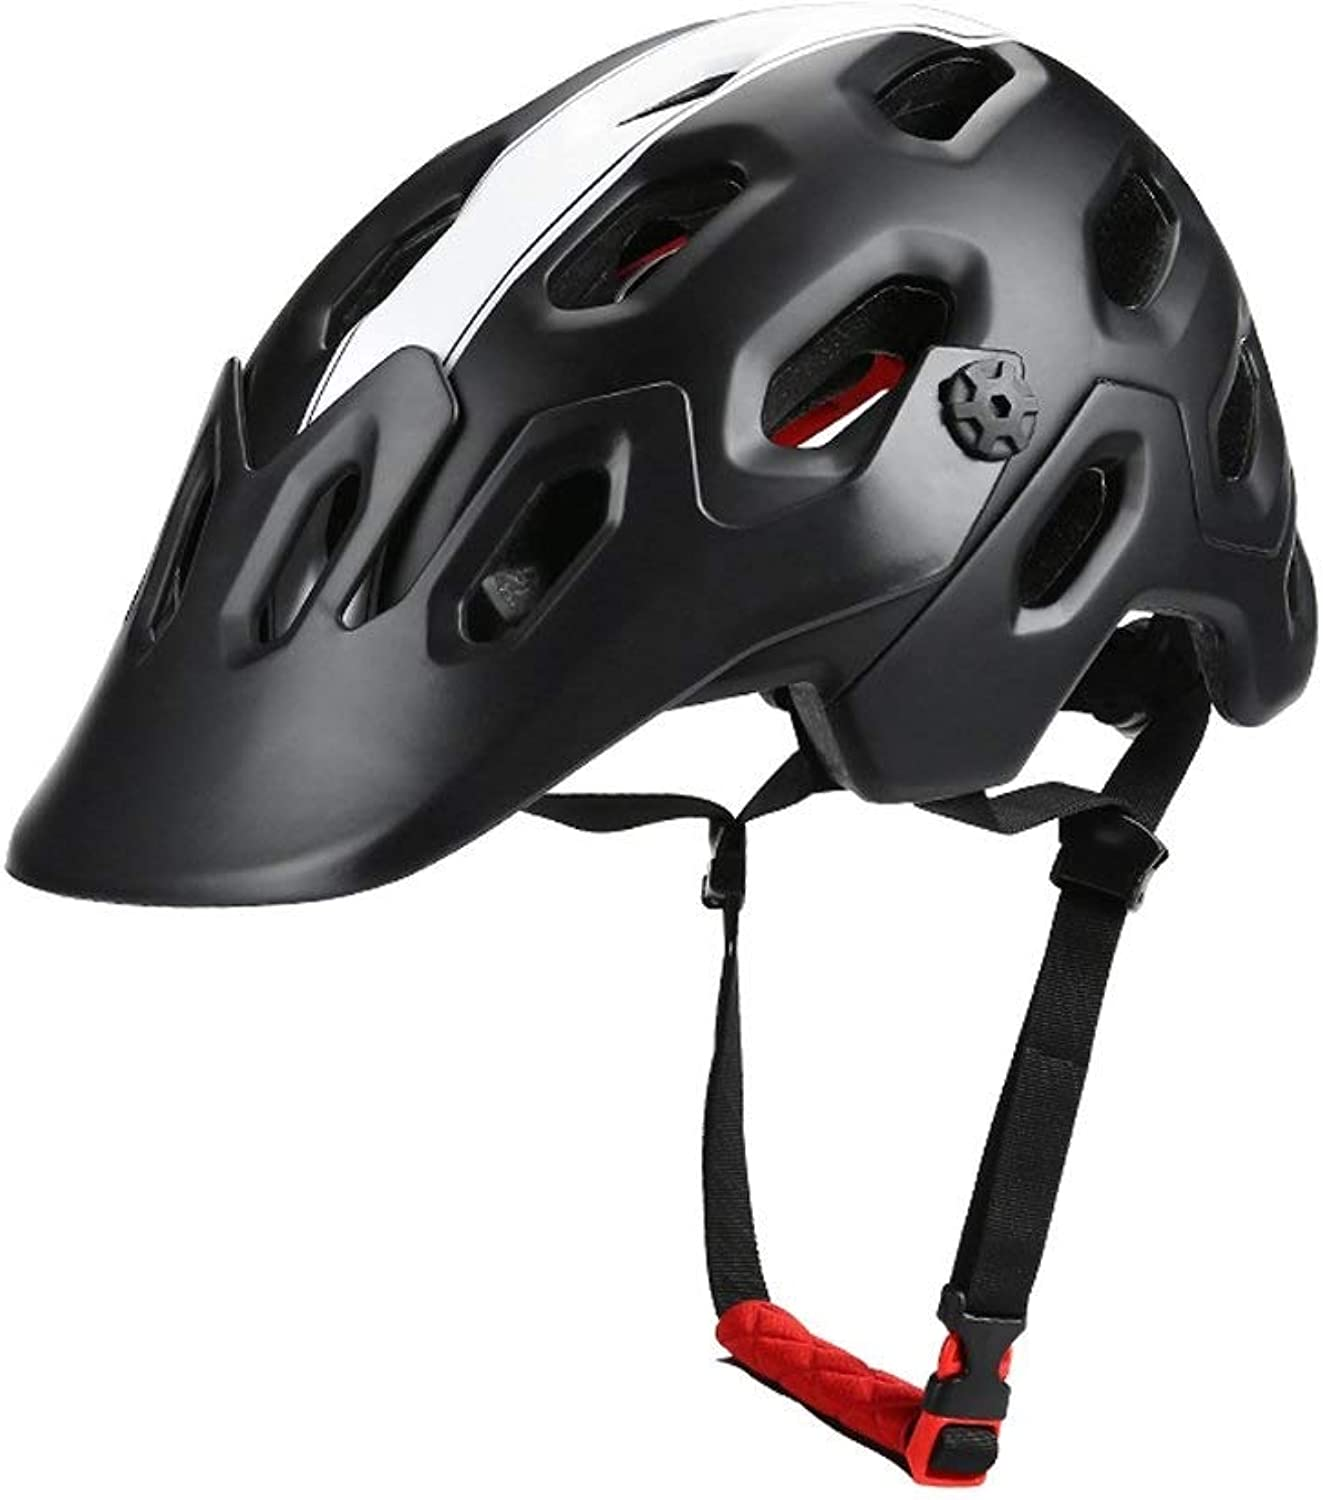 ZL-TK Cycle Bike Helmet with Detachable Magnetic Goggles Visor Shield for Women Men, Cycling Mountain & Road Bicycle Helmets Adjustable Adult Safety Predection and Breathable